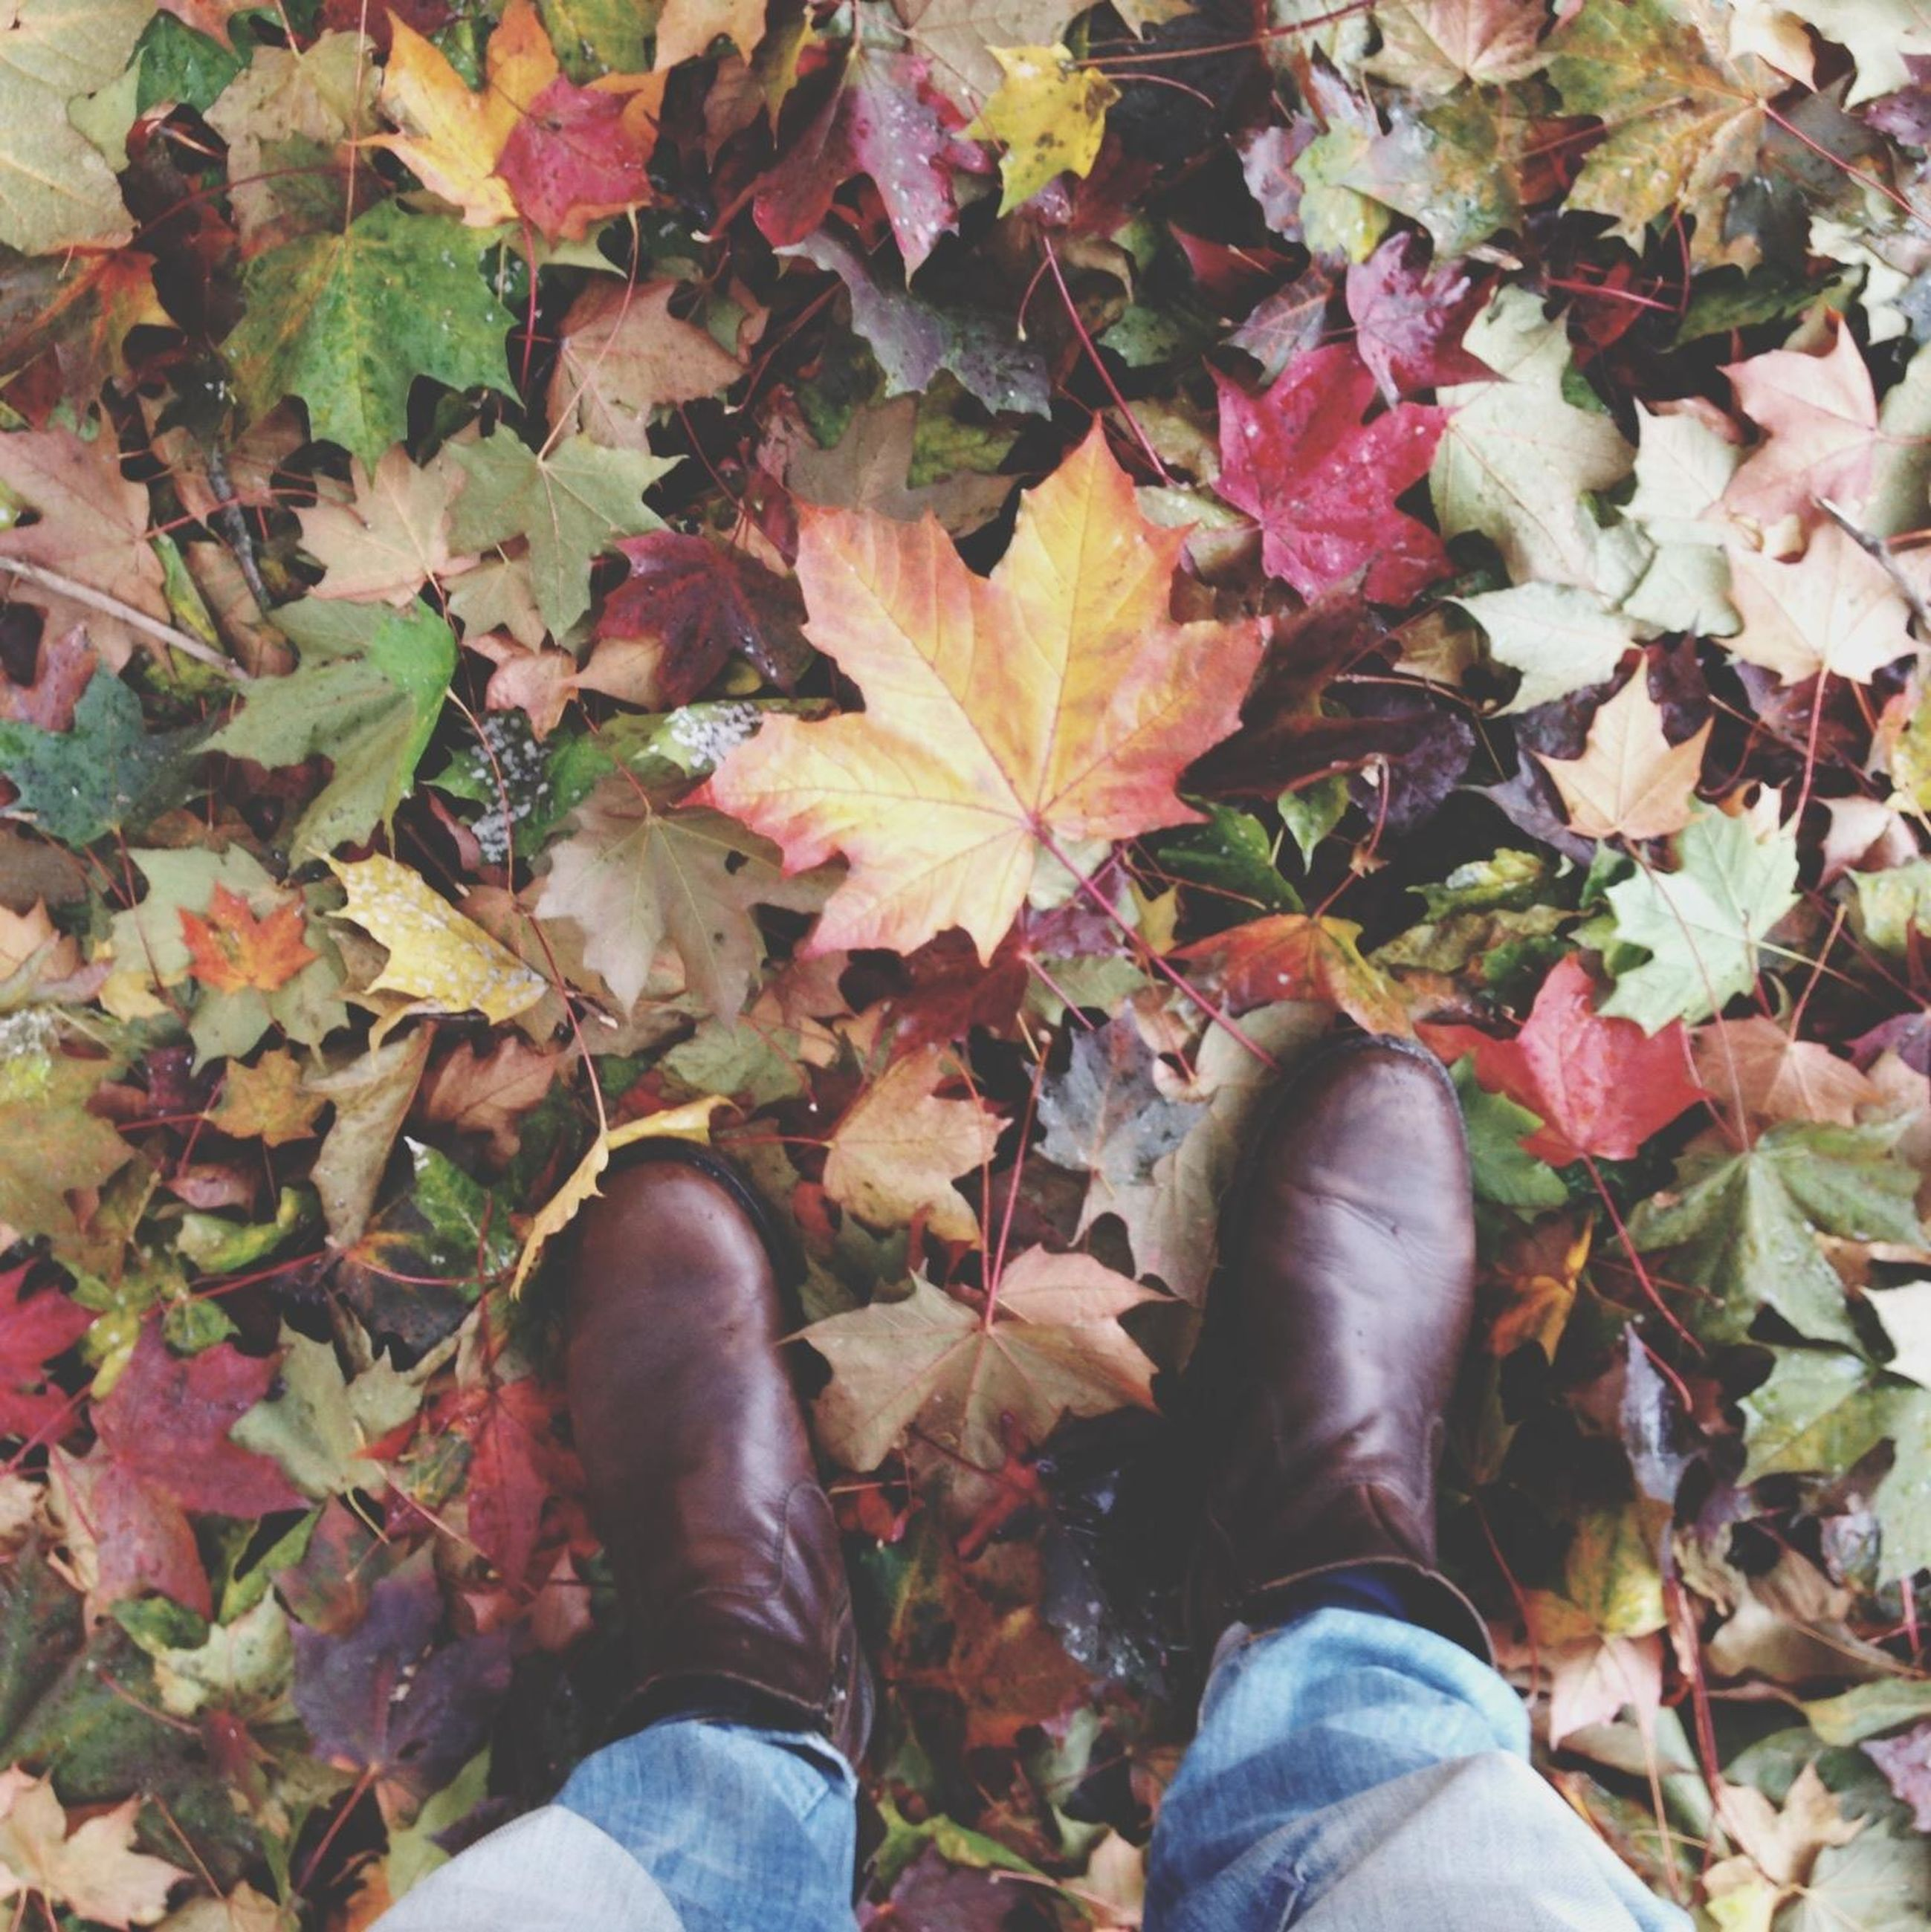 low section, leaf, autumn, person, personal perspective, change, shoe, season, leaves, dry, standing, high angle view, human foot, lifestyles, fallen, unrecognizable person, maple leaf